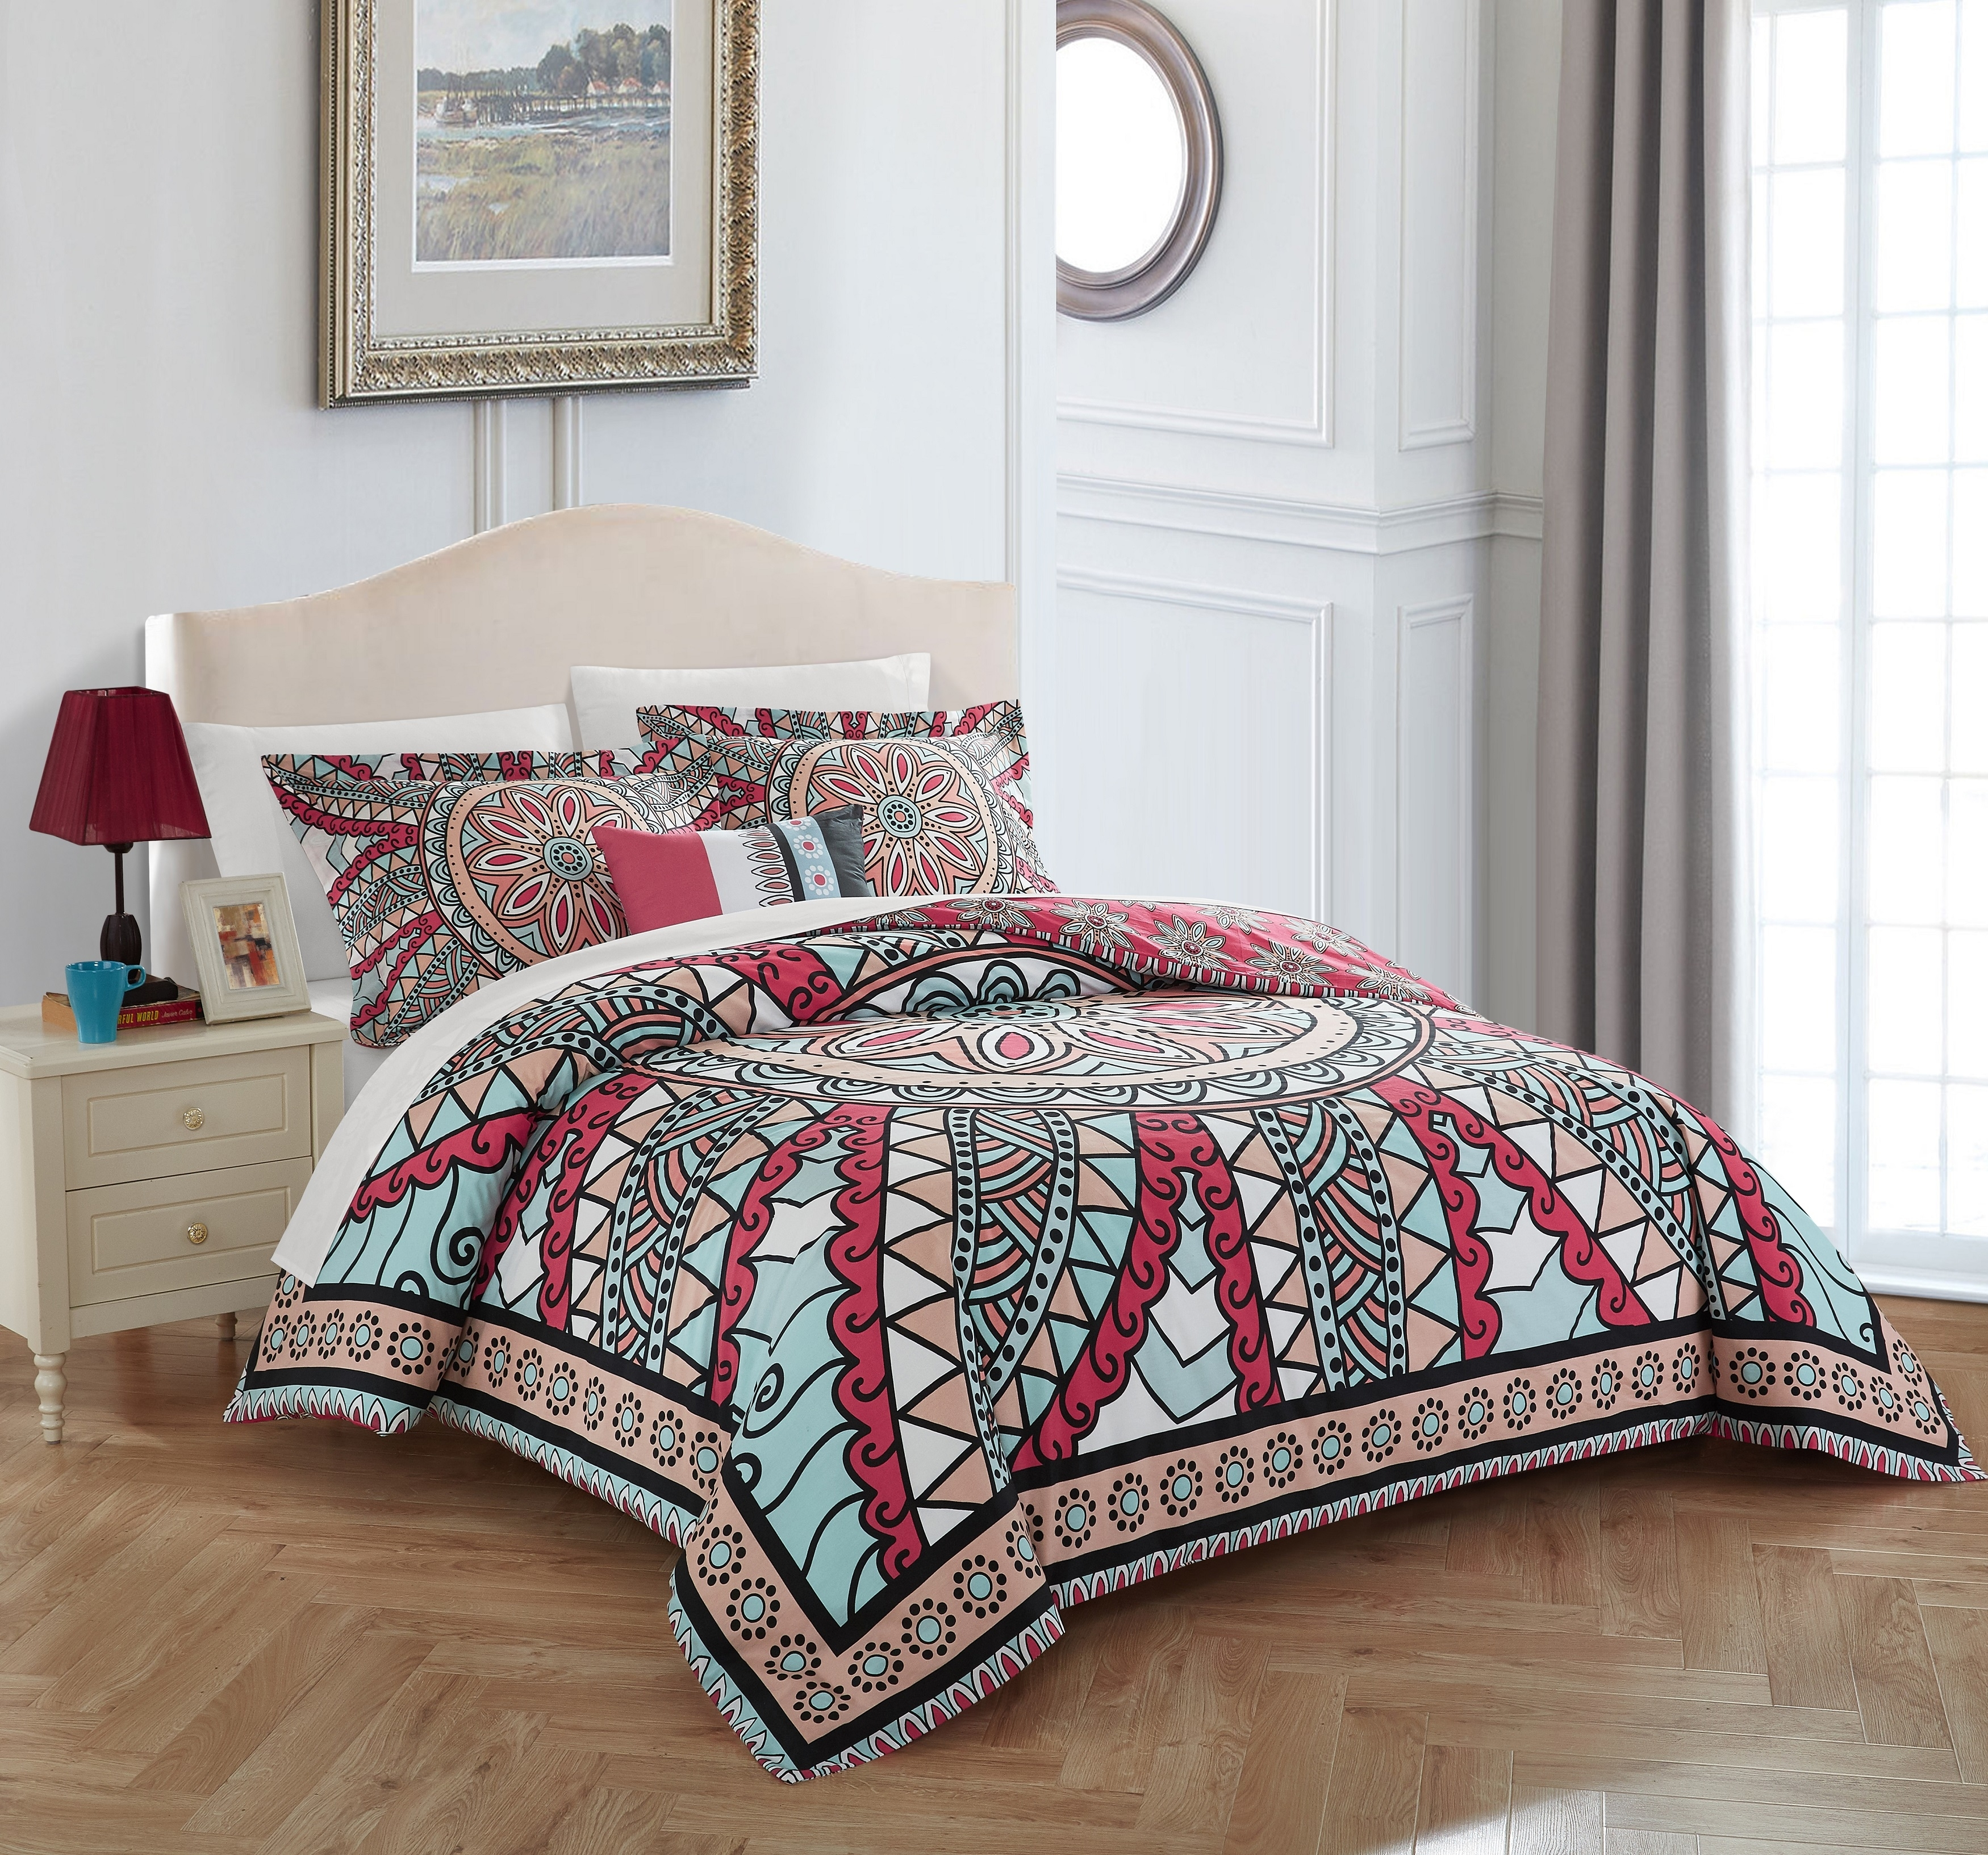 Chic Home 4 Pc. Aiyana 100% Cotton 200 Thread Count Xl Panel Framed Boho Printed Reversible Duvet Cover Set W/ Shams & Decorative Pillows - King